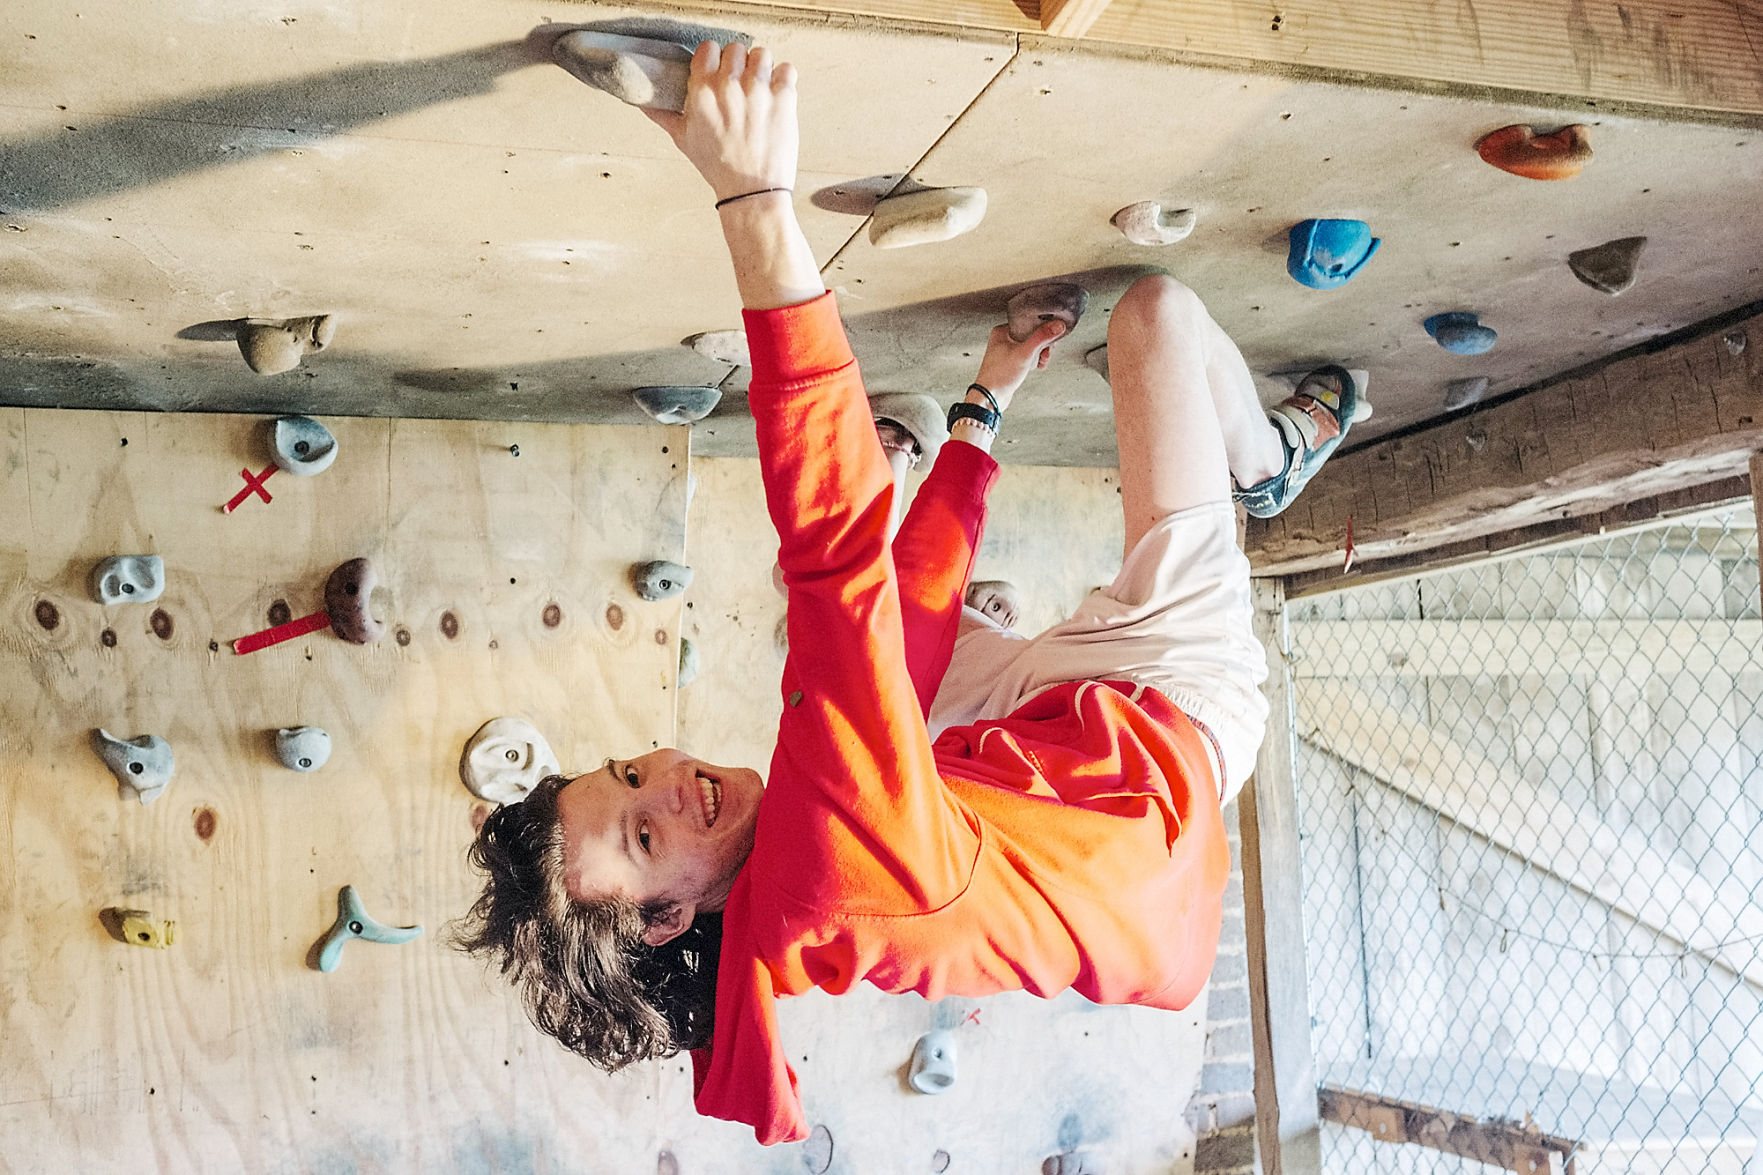 Maryville College student Ryan Indelicato practices bouldering